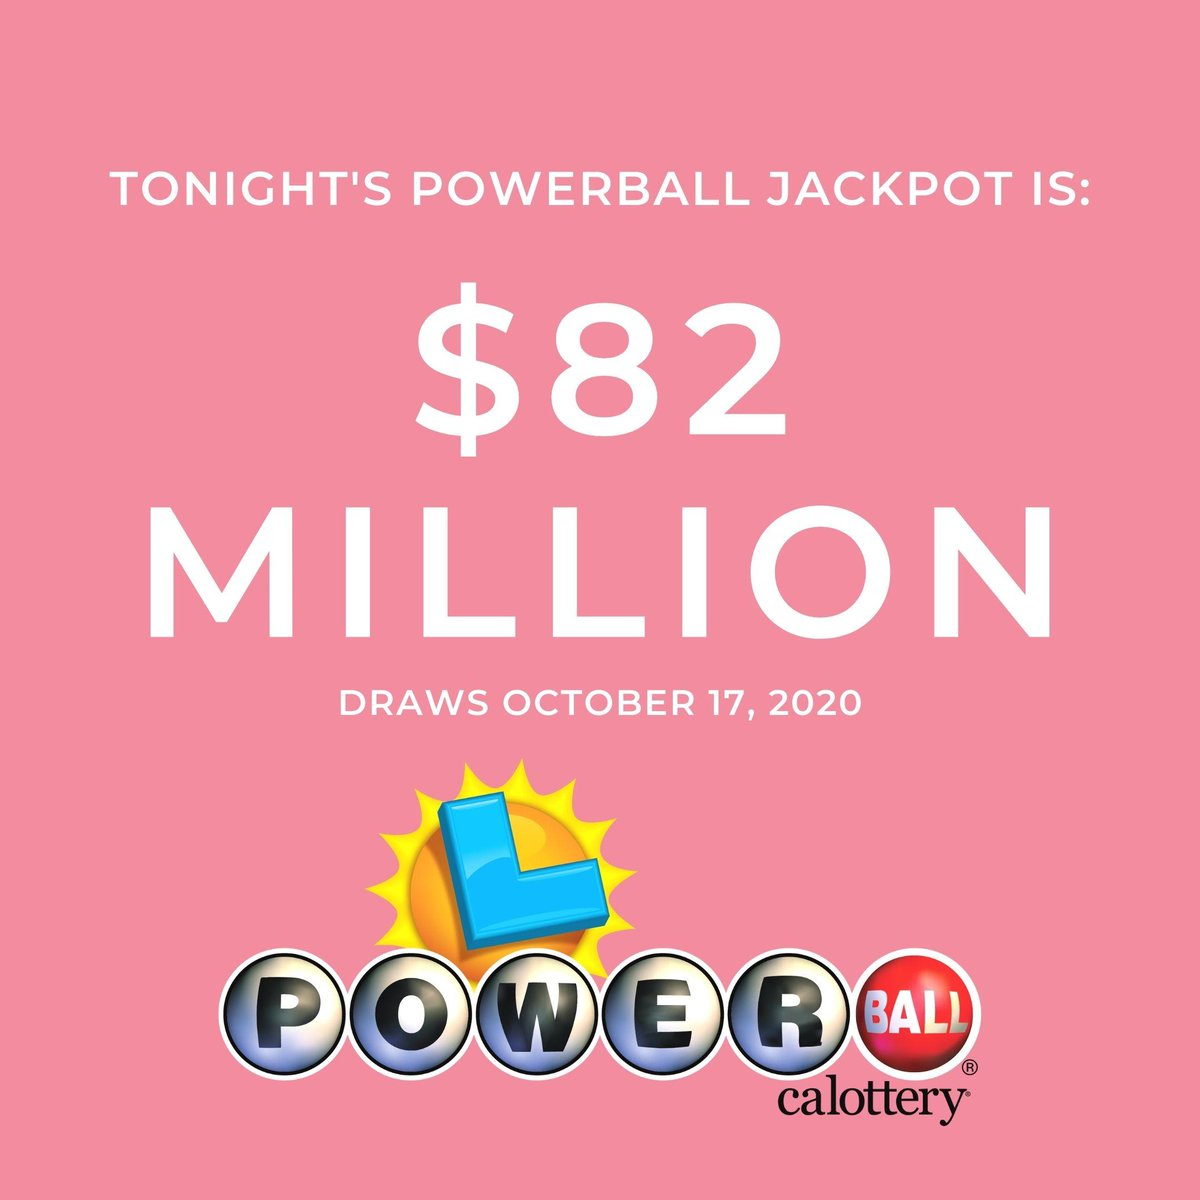 Tonight's #Powerball jackpot is $82 Million! Visit your local retailer to purchase your ticket today! #JackpotAlert #calottery https://t.co/7zBZJFA5R1